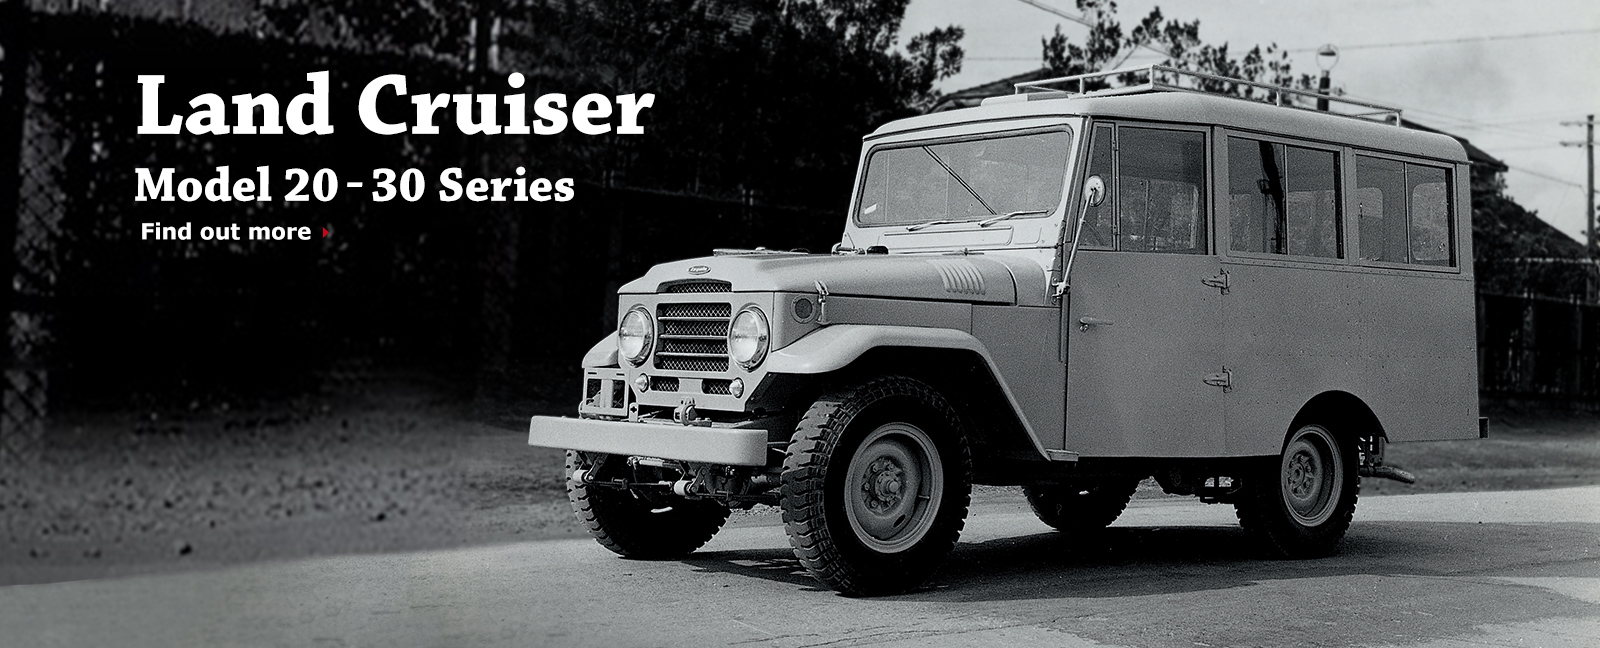 Land Cruiser Model 20-30 Series Find out more